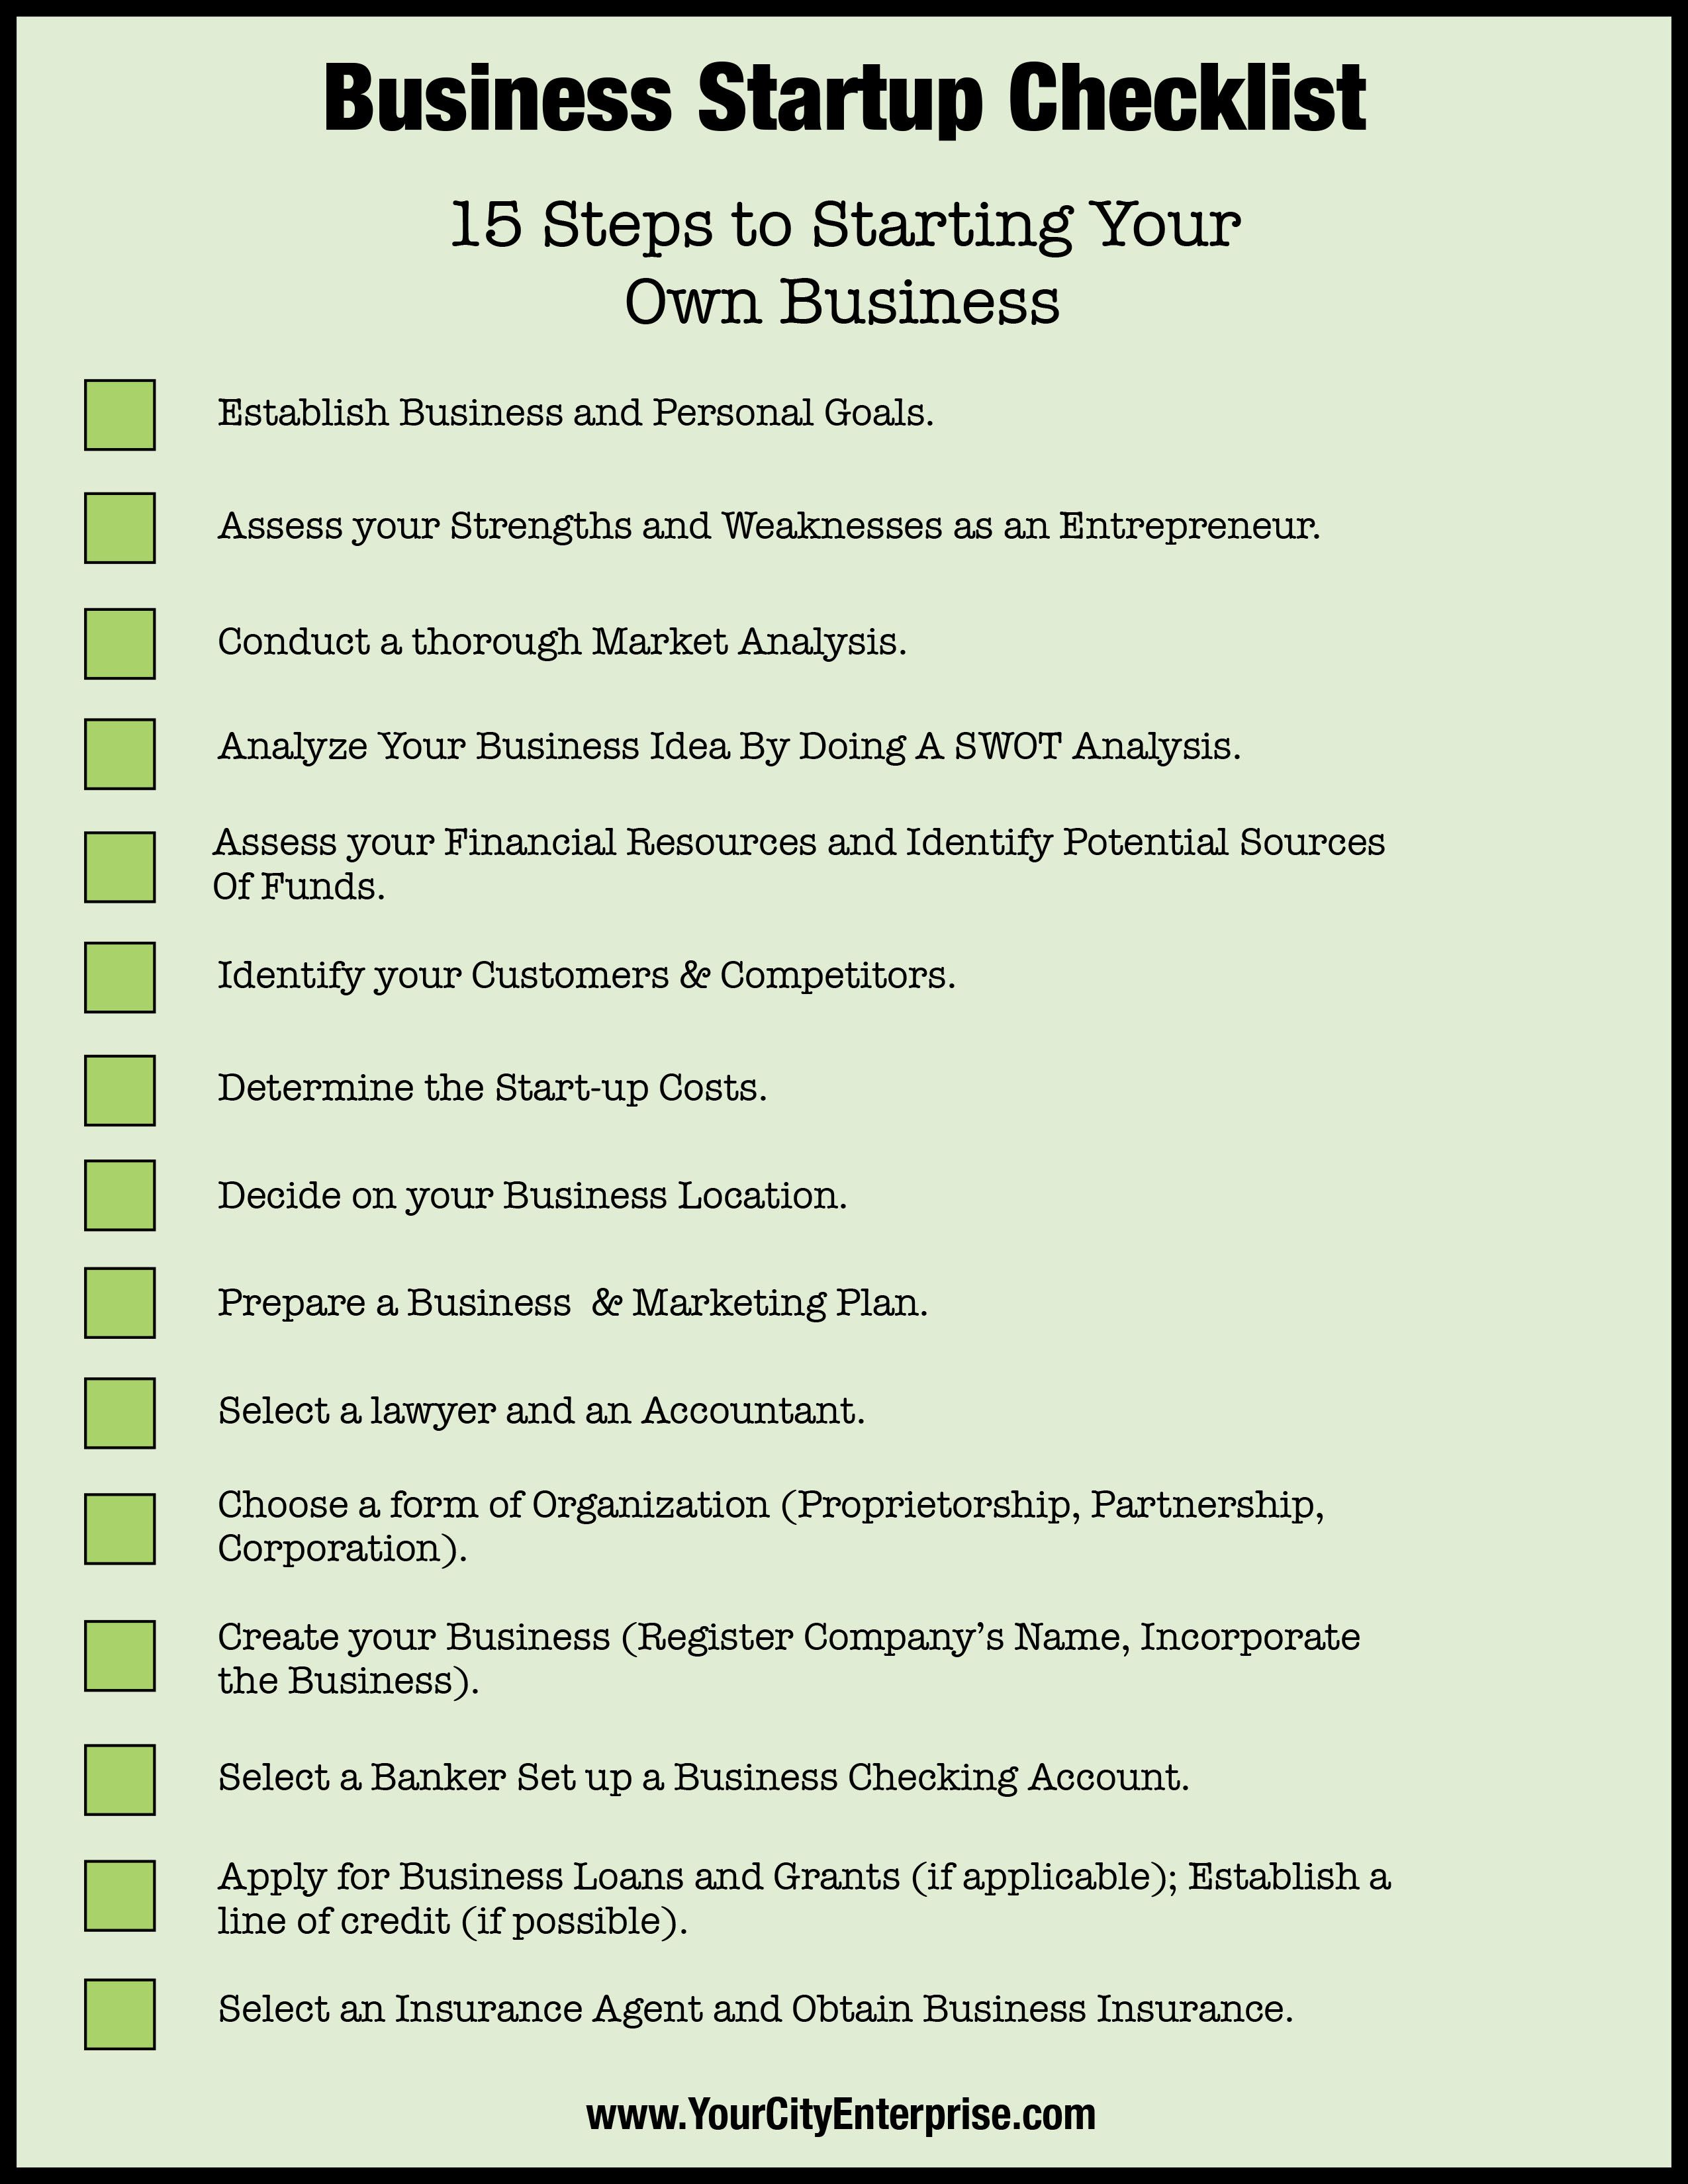 Start A Startup Company Business Startup Checklist Ready To Take The Leap Into